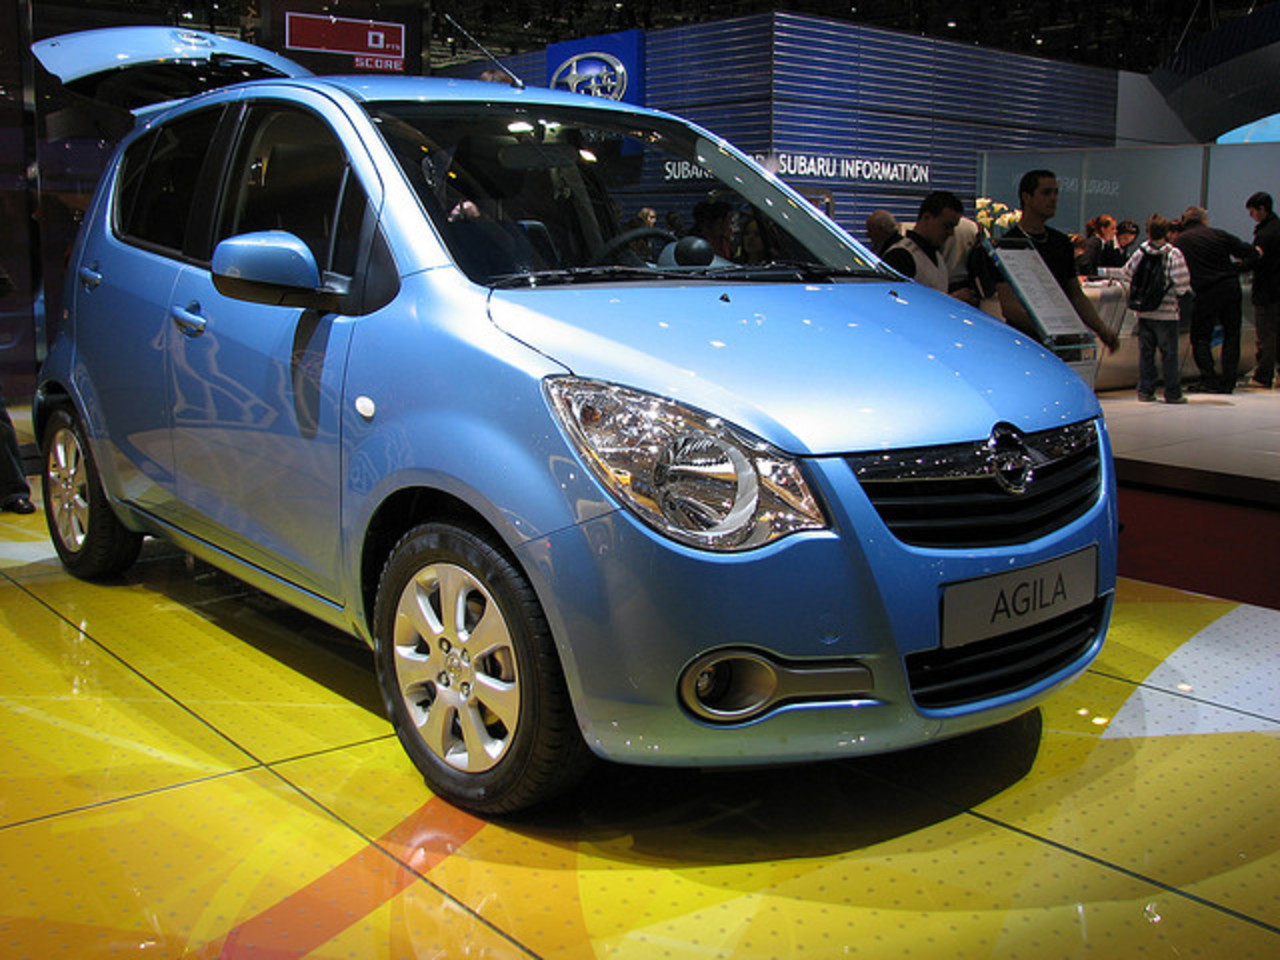 The all new Opel Agila | Flickr - Photo Sharing!